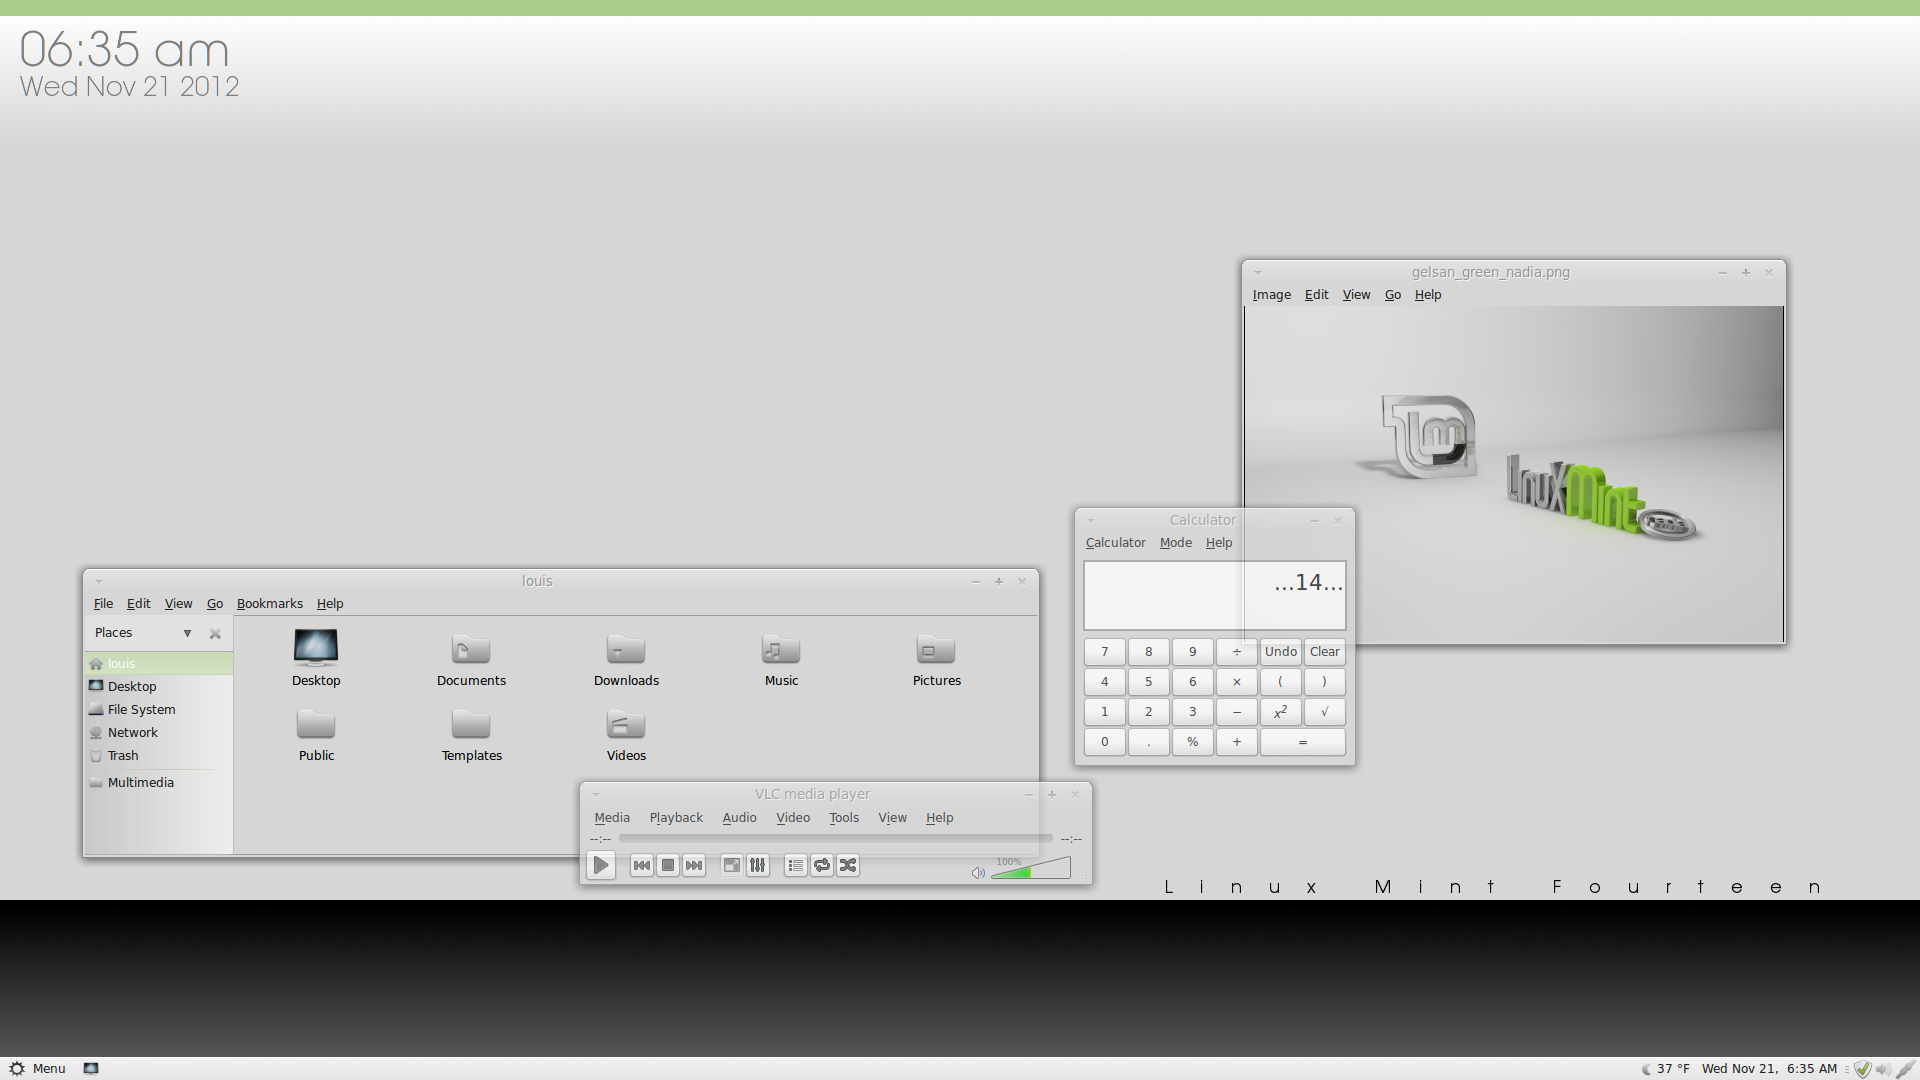 Linux Mint 14 by pissnaround